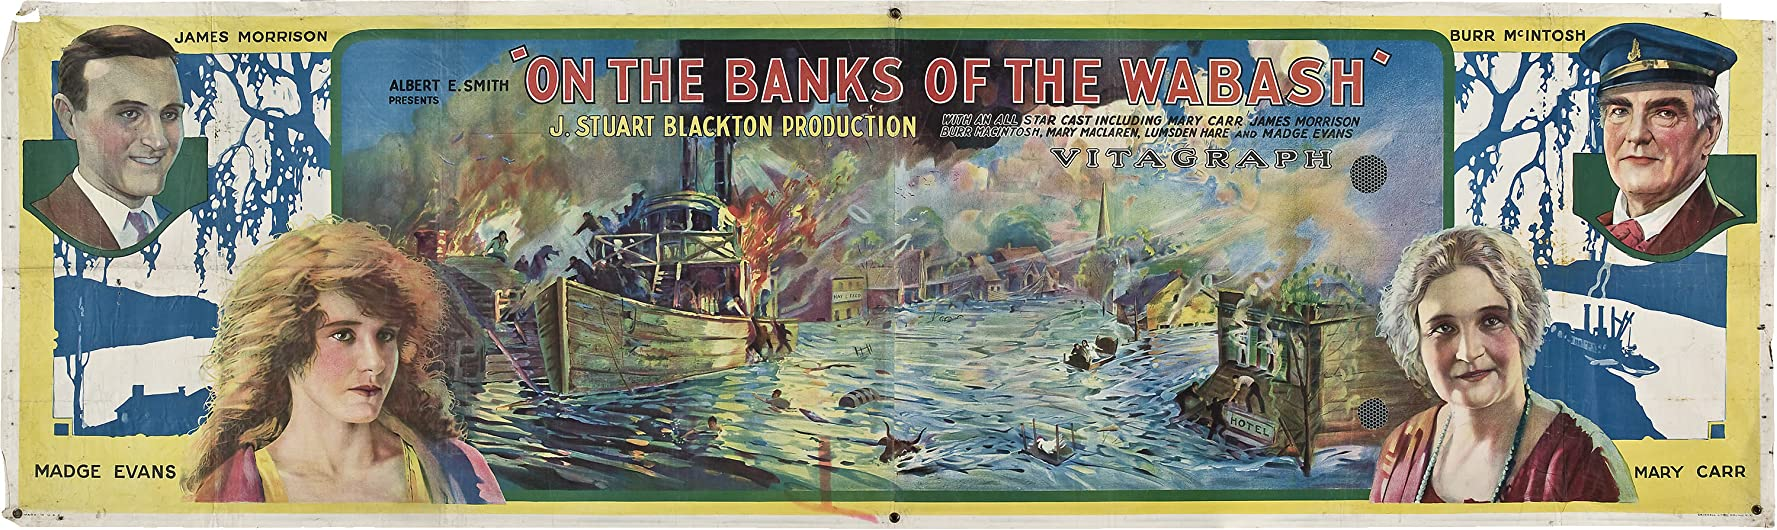 On the Banks of the Wabash (1923)